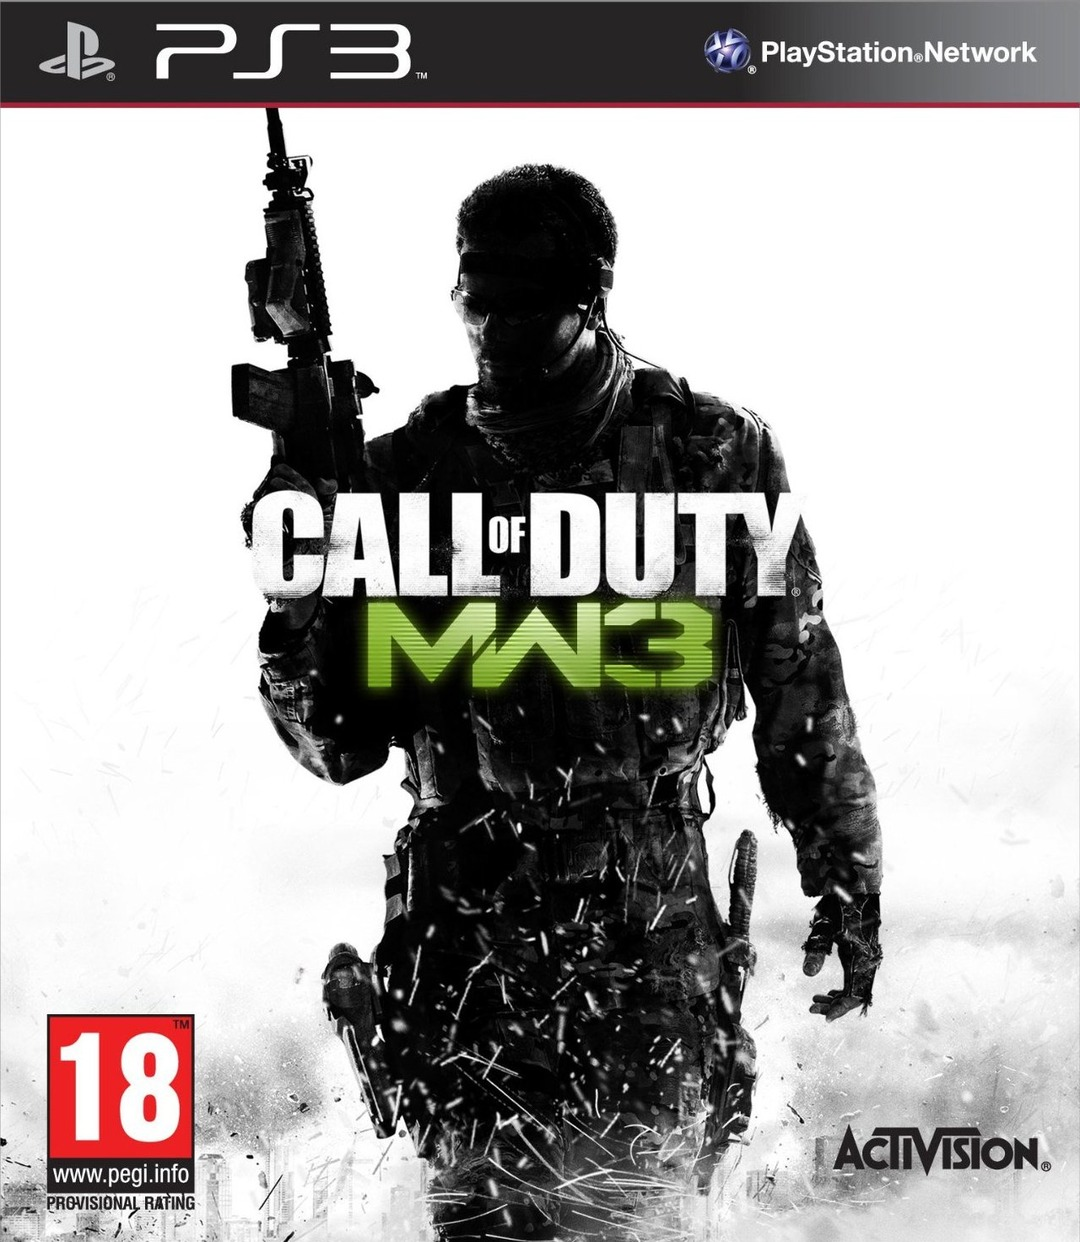 [MULTI] COD Modern Warfare 3 PS3-DComics